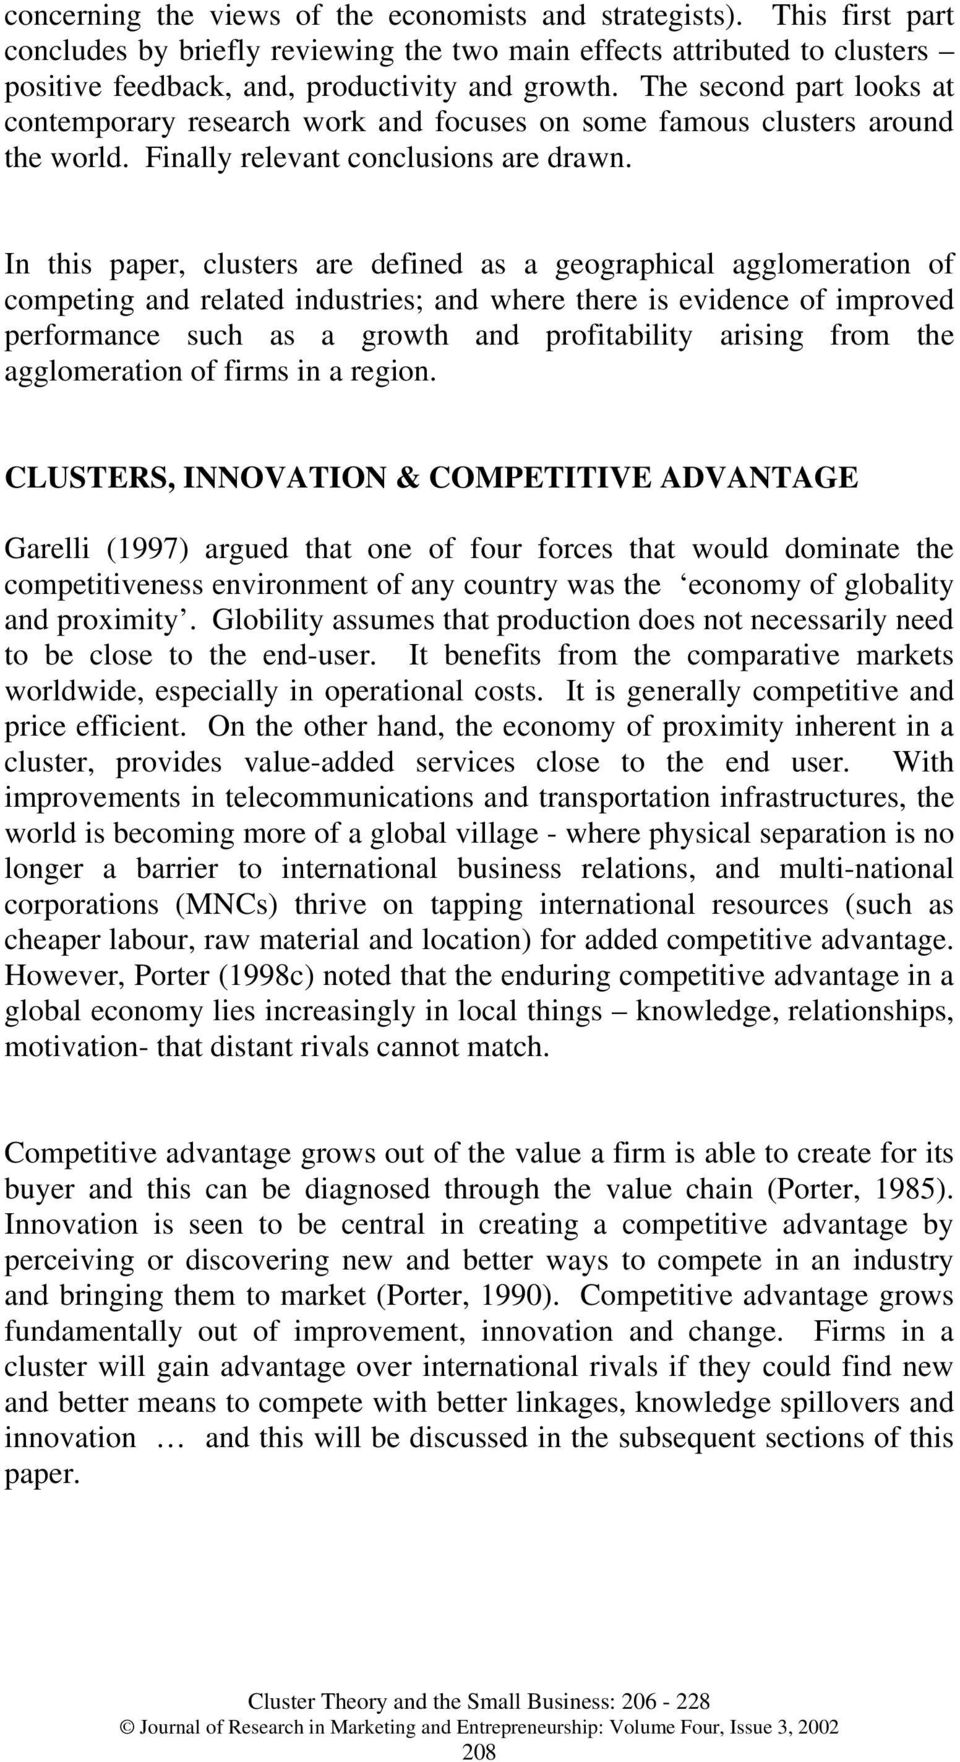 In this paper, clusters are defined as a geographical agglomeration of competing and related industries; and where there is evidence of improved performance such as a growth and profitability arising